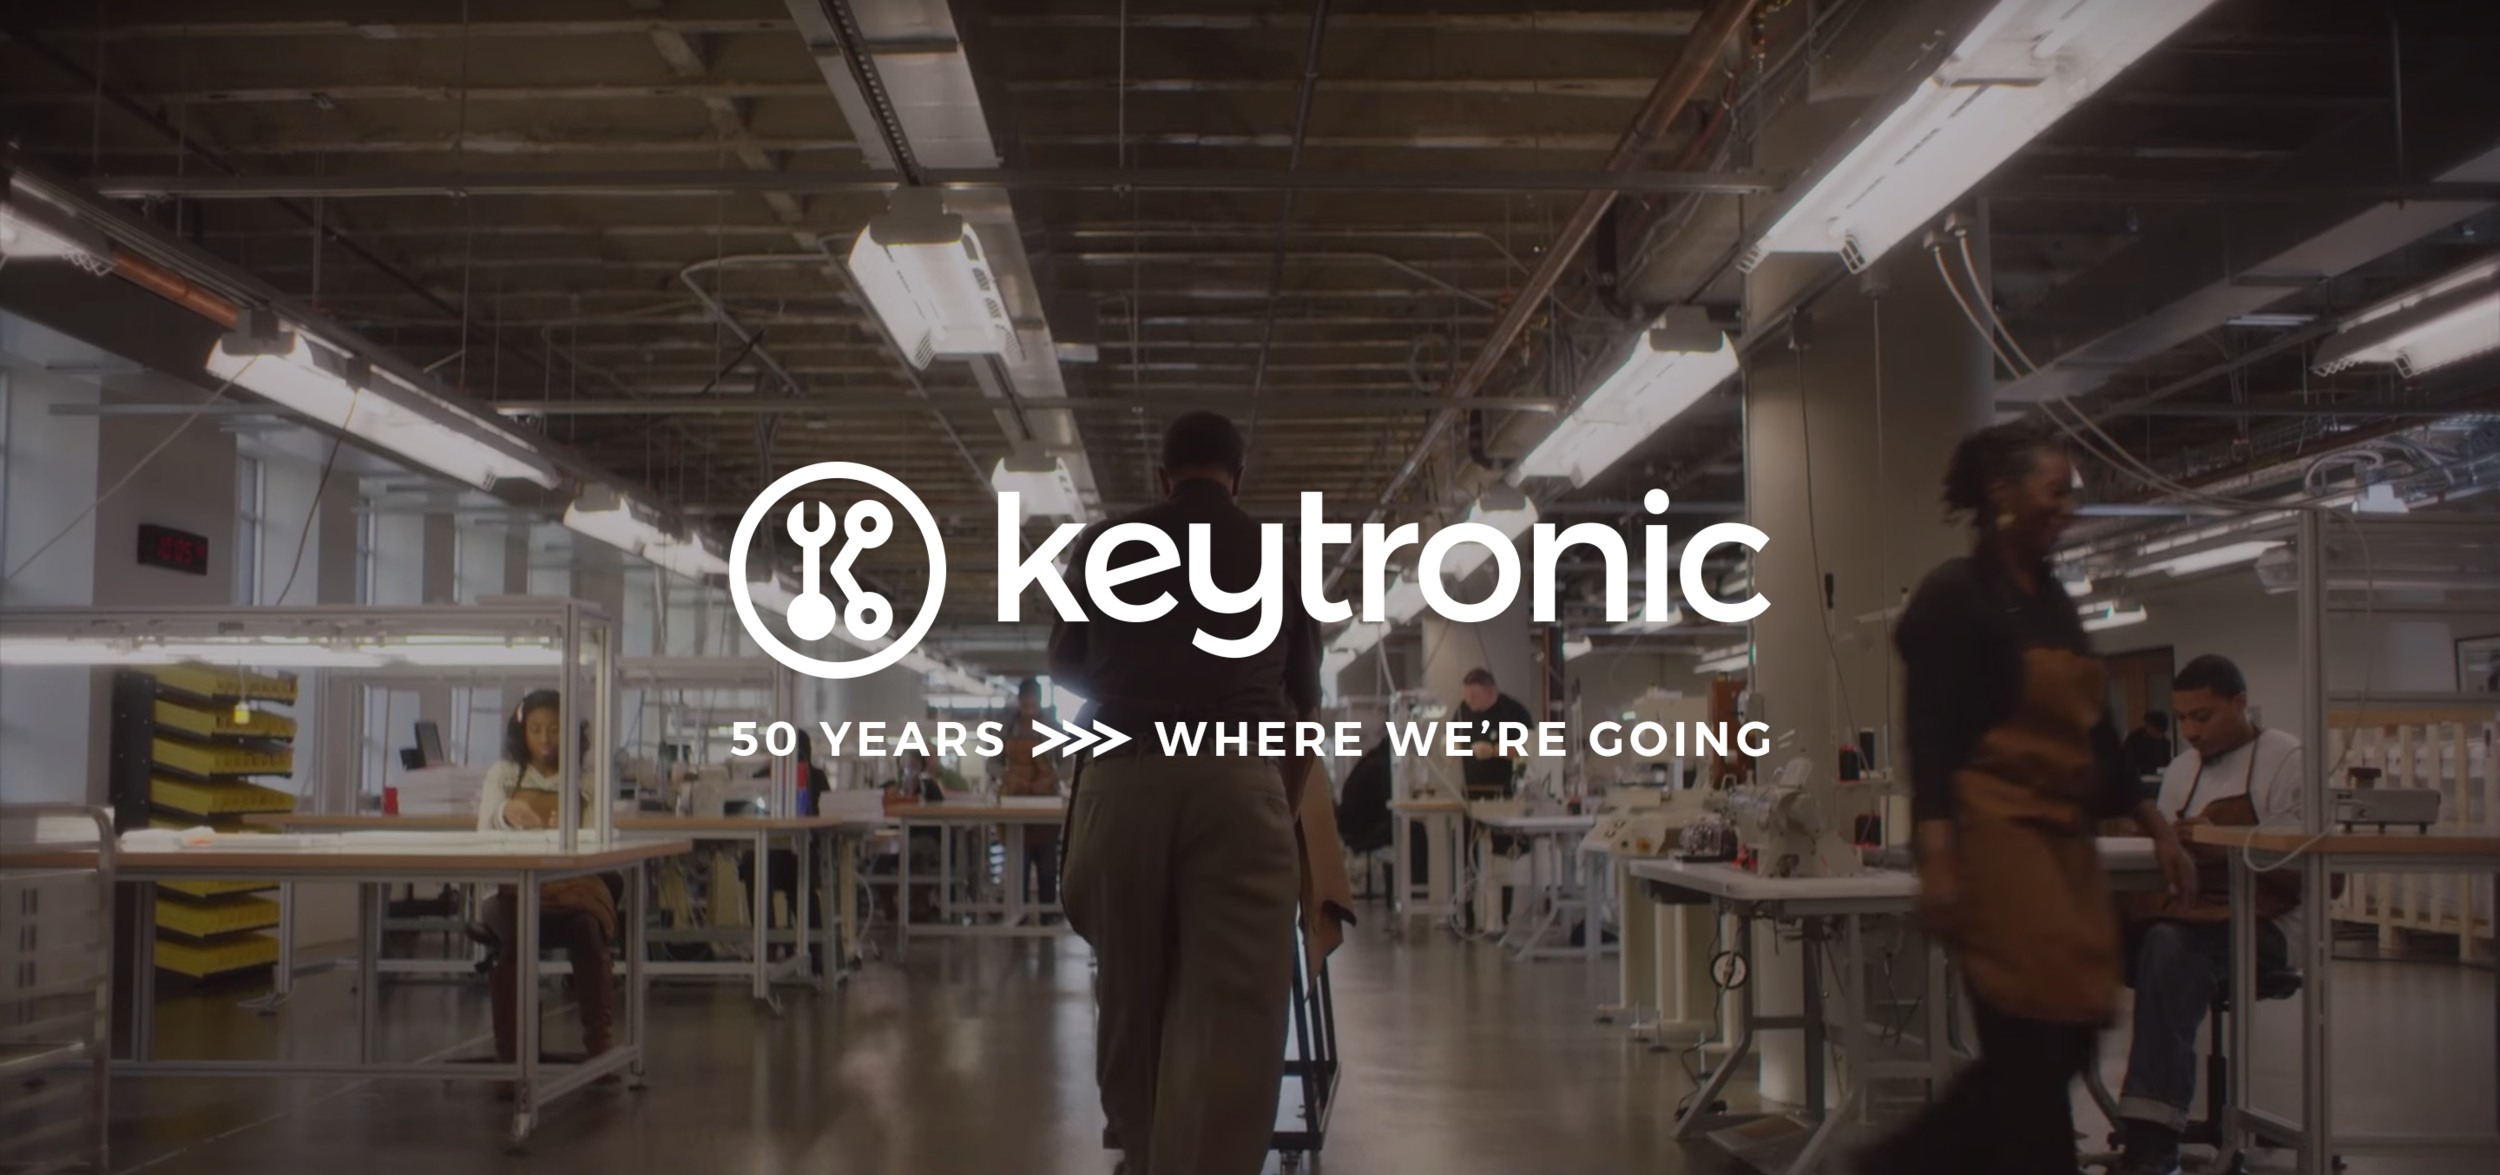 Keytronic_50Years-WhereWereGoing.png